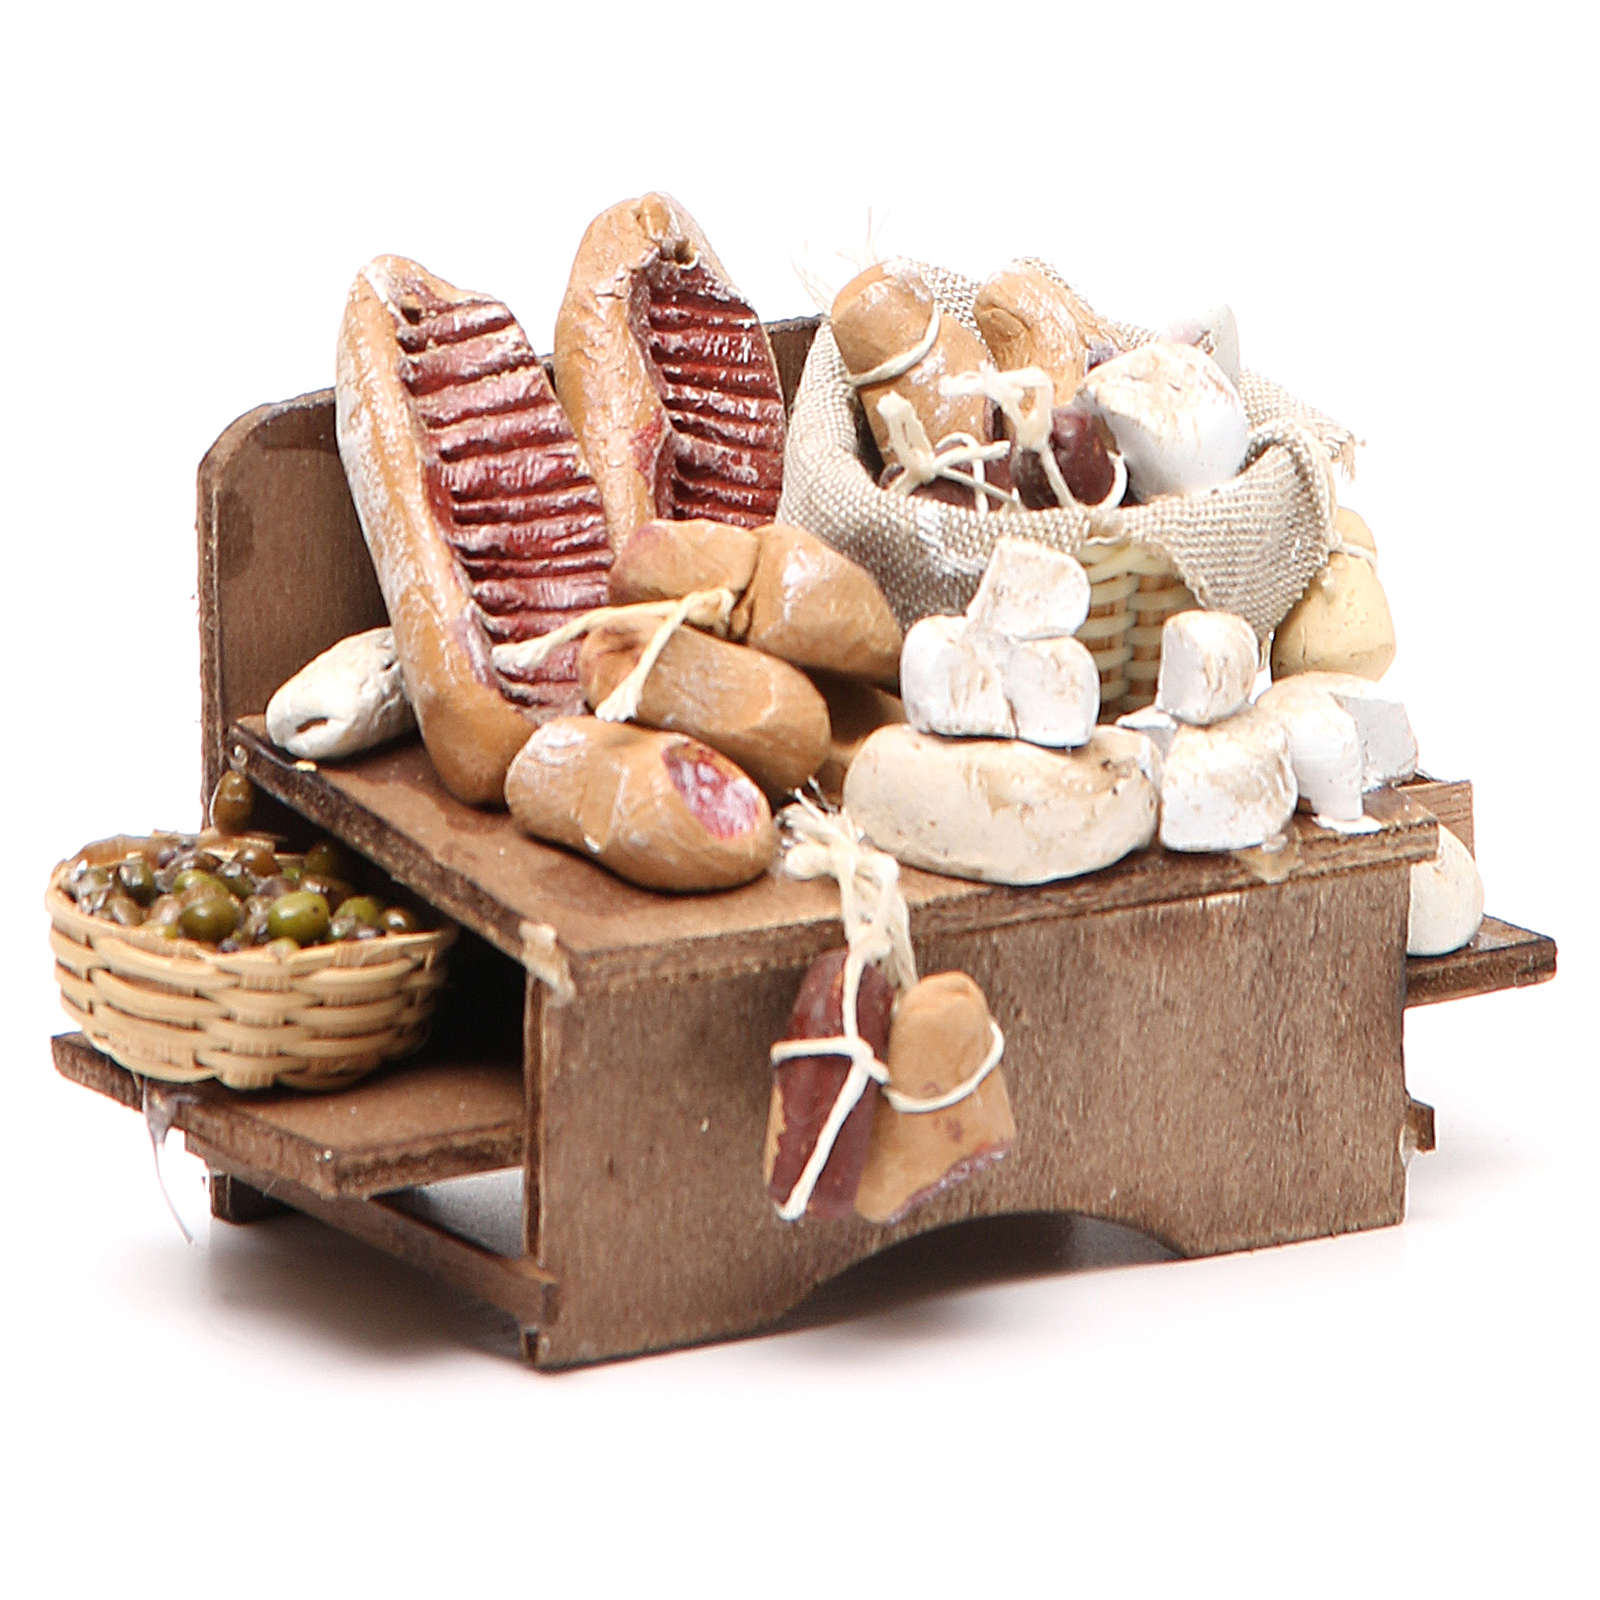 Work bench olives cheeses and cured meats 9x12x6cm neapolitan Nativity 4